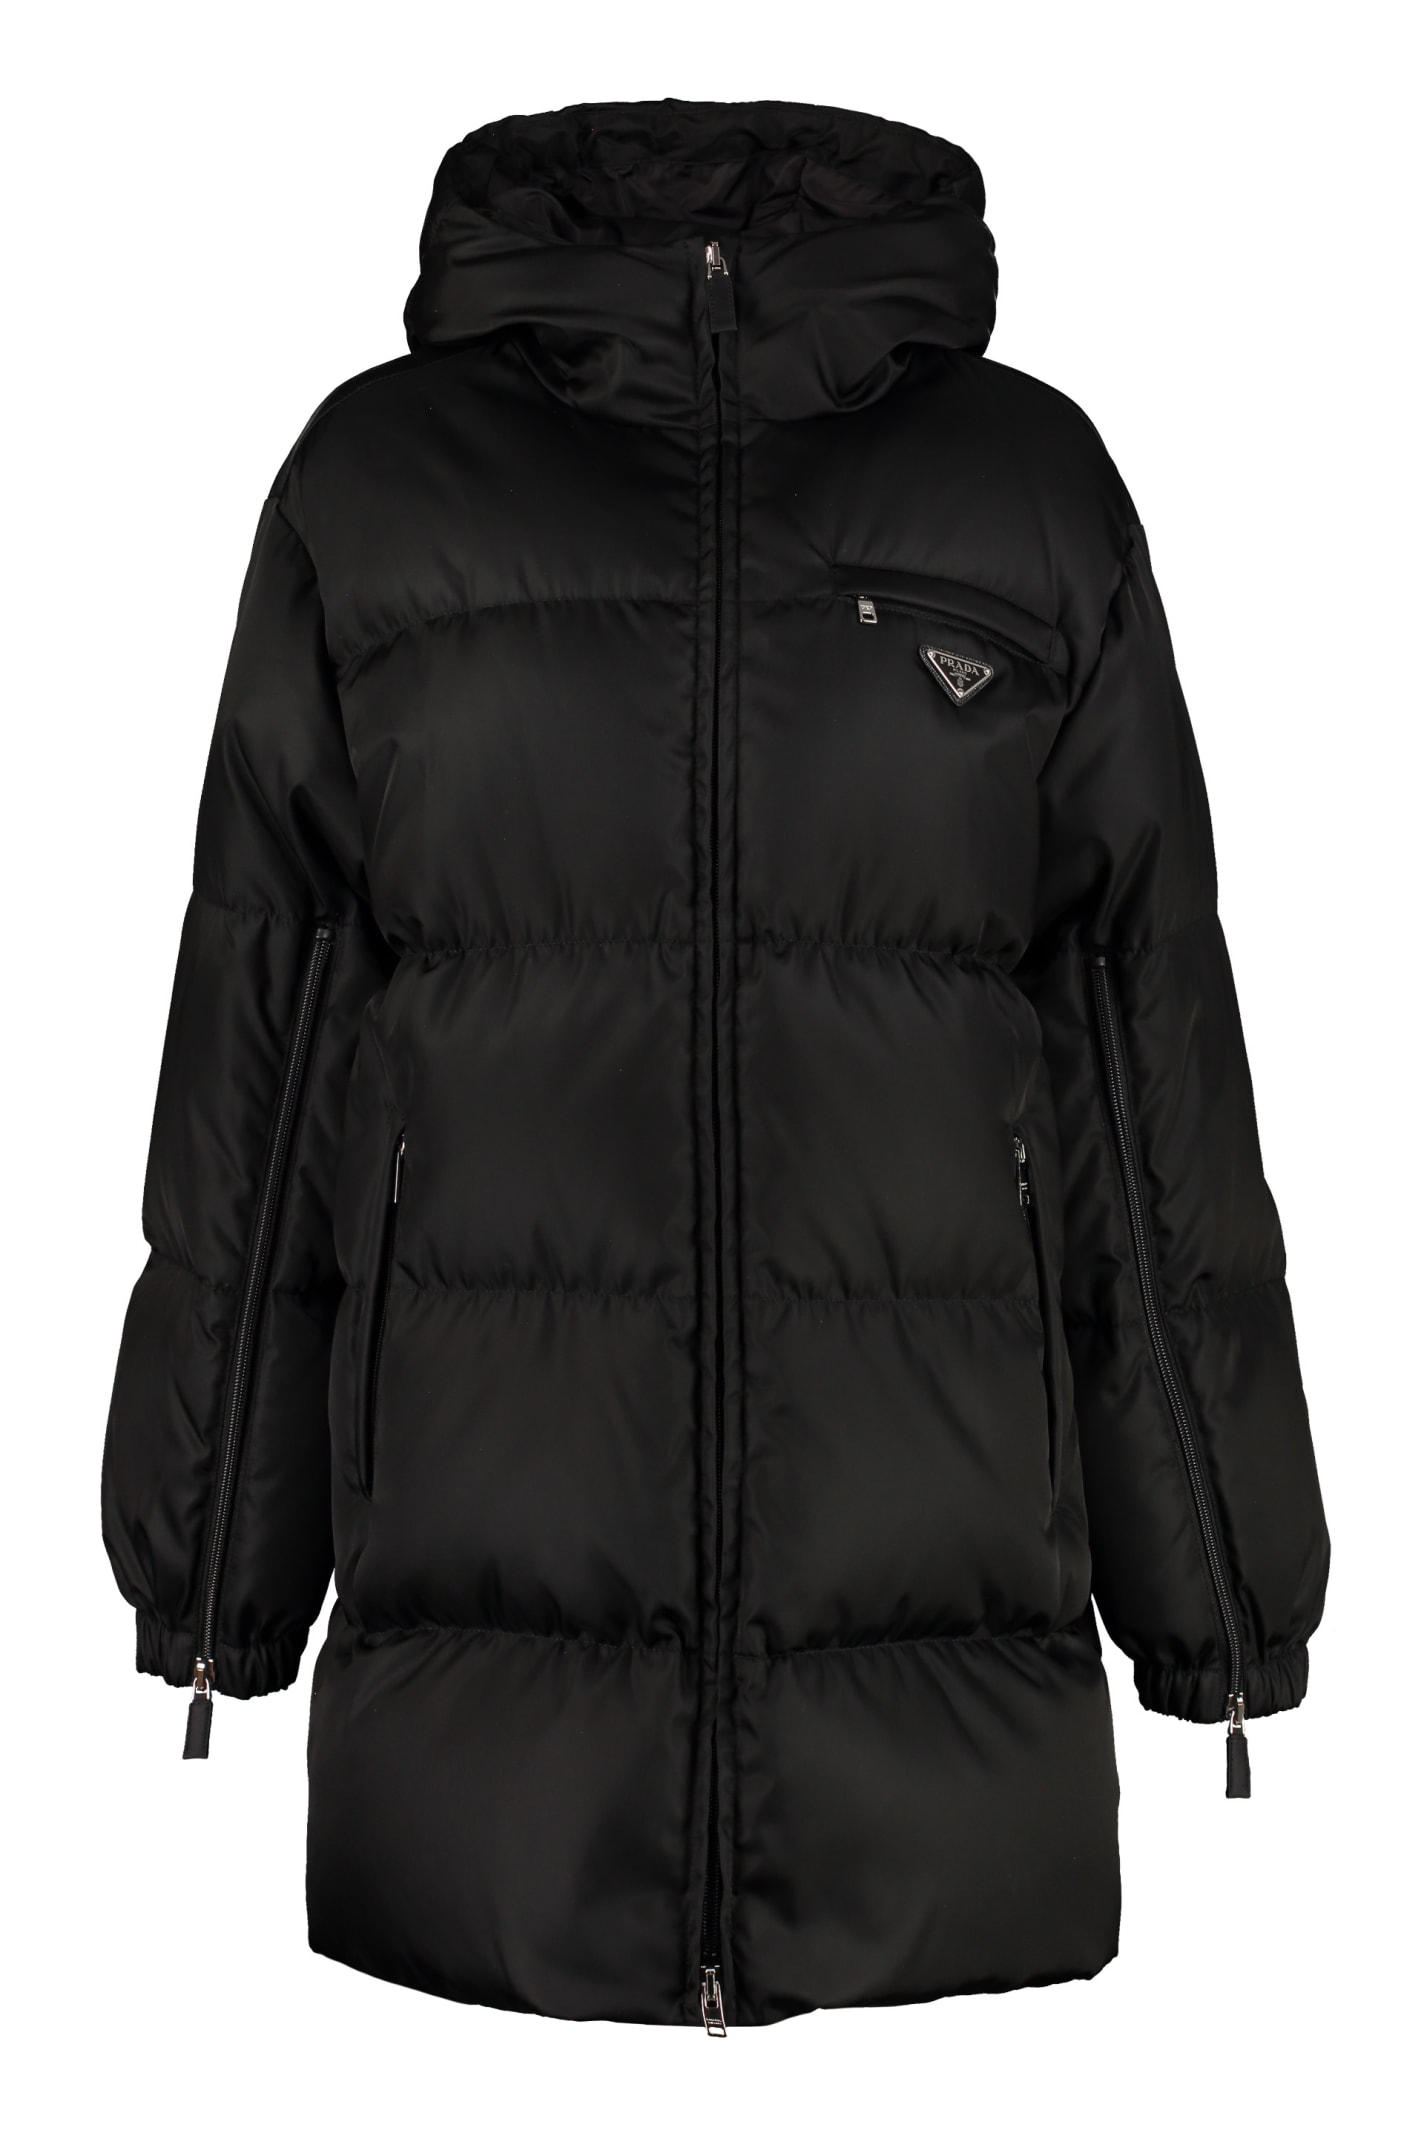 Prada Full Zip Padded Hooded Jacket